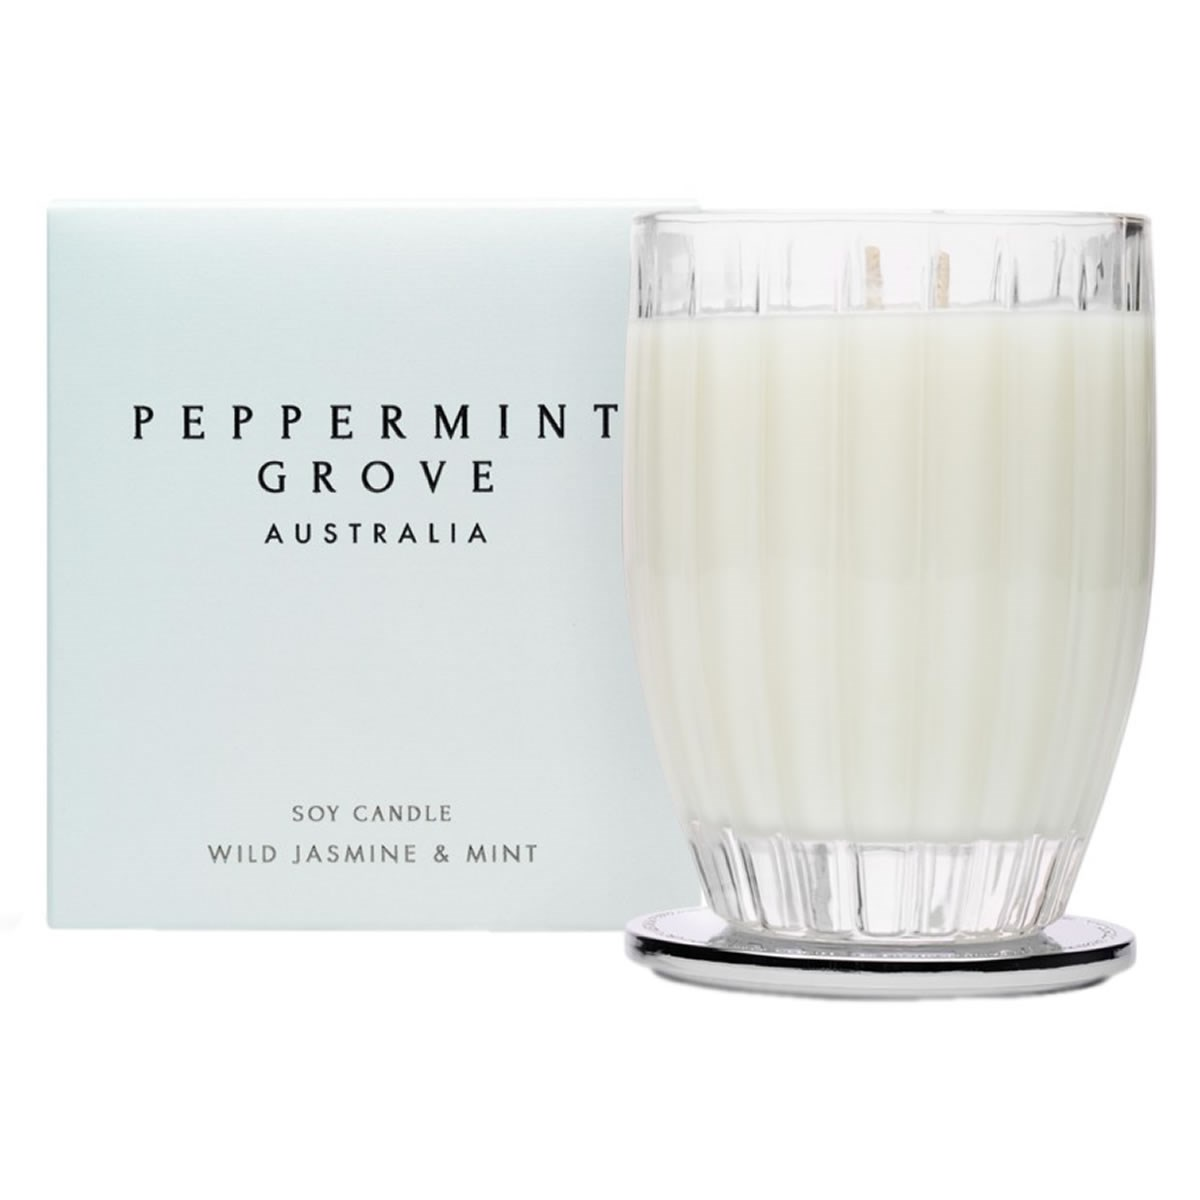 Peppermint Grove Australia Large Soy Candle - Wild Jasmine & Mint